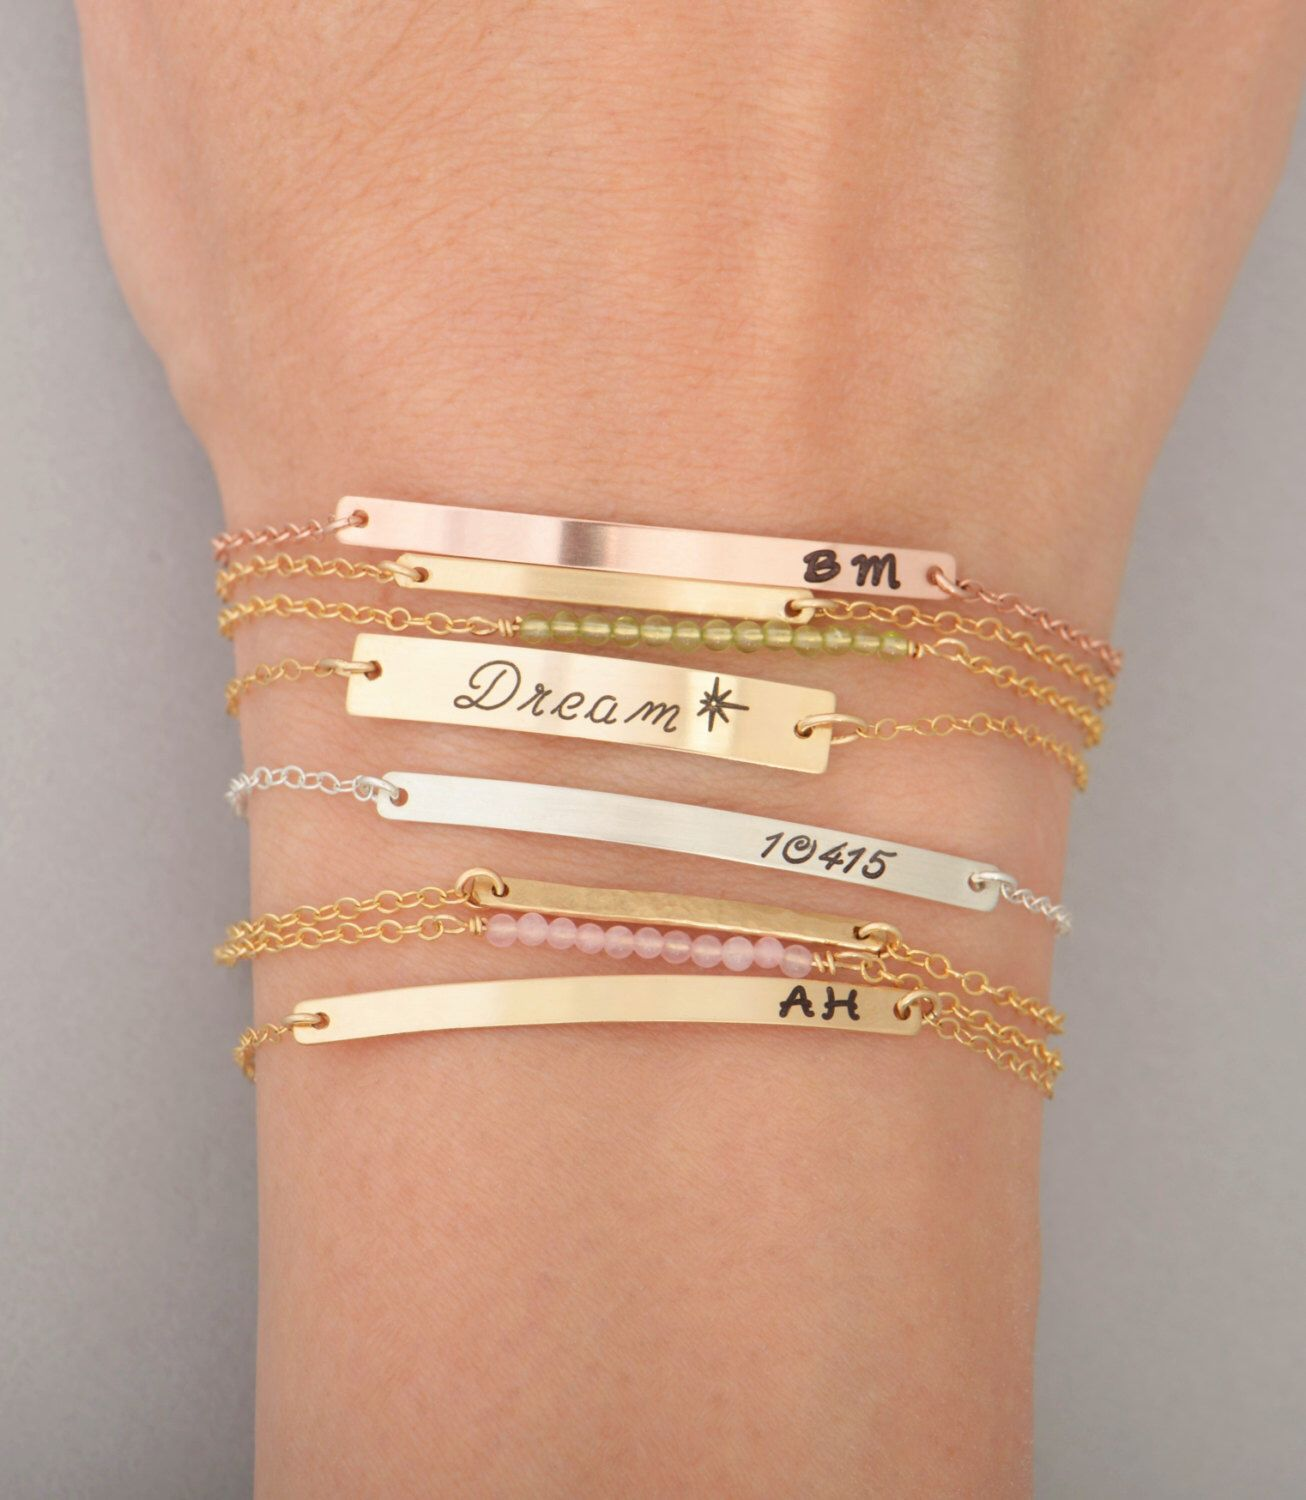 vila arrow shop bracelets gold horizontal love bar women products bracelet silver simply minimalist for rosa rose